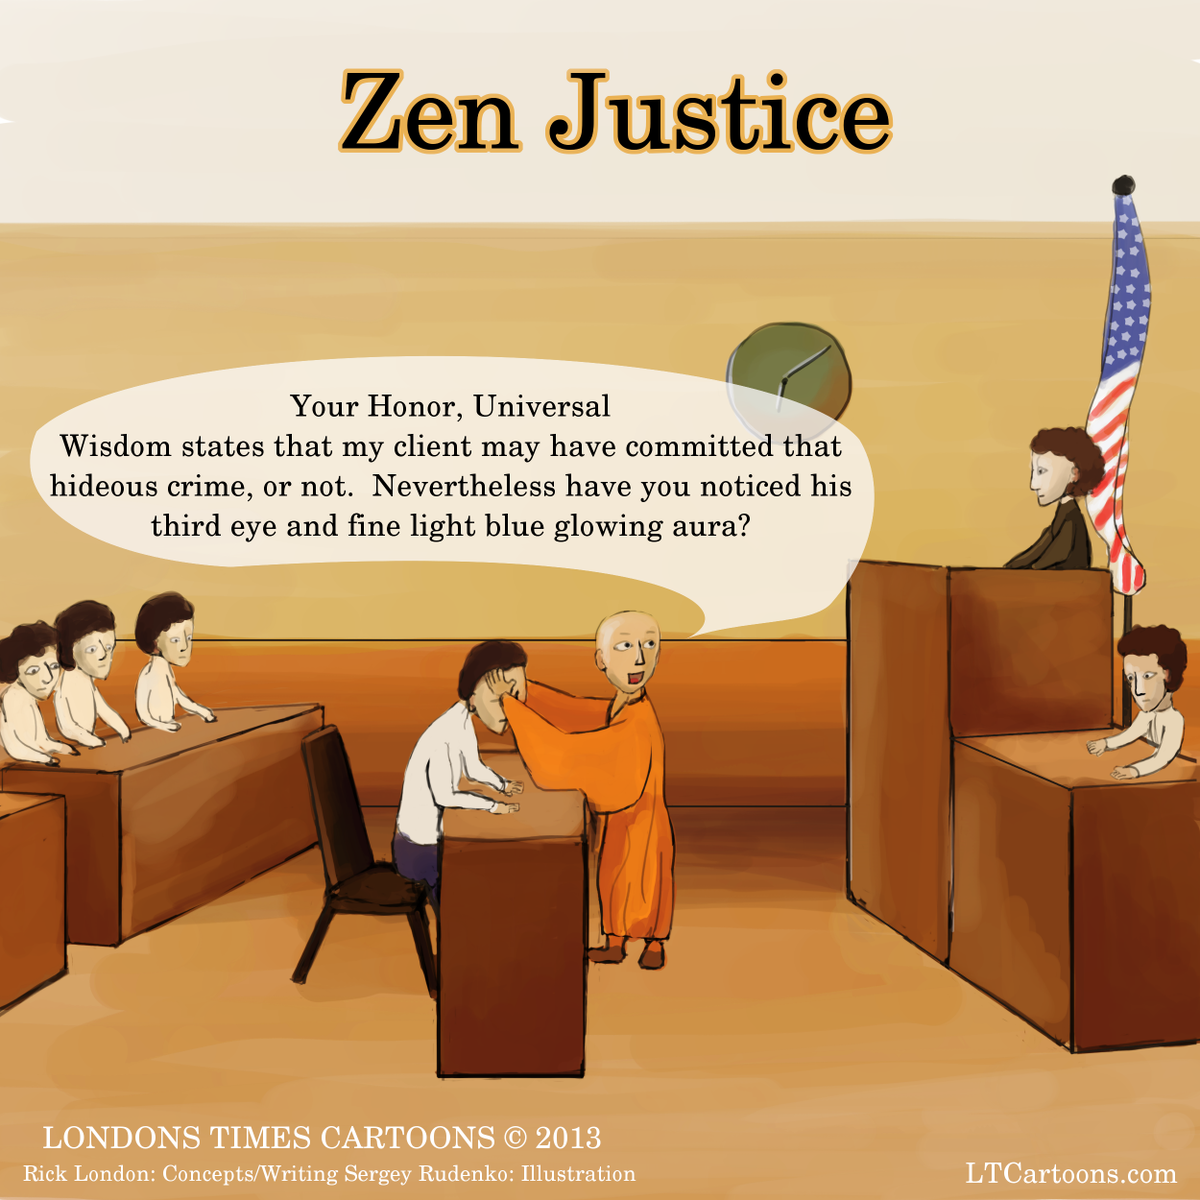 #Zen #Justice by @LTCartoons #humor #lawyers #courtroom #trials #attorneys #funny #buddhism #cartoon #comic https://t.co/TK9bhFIwrv